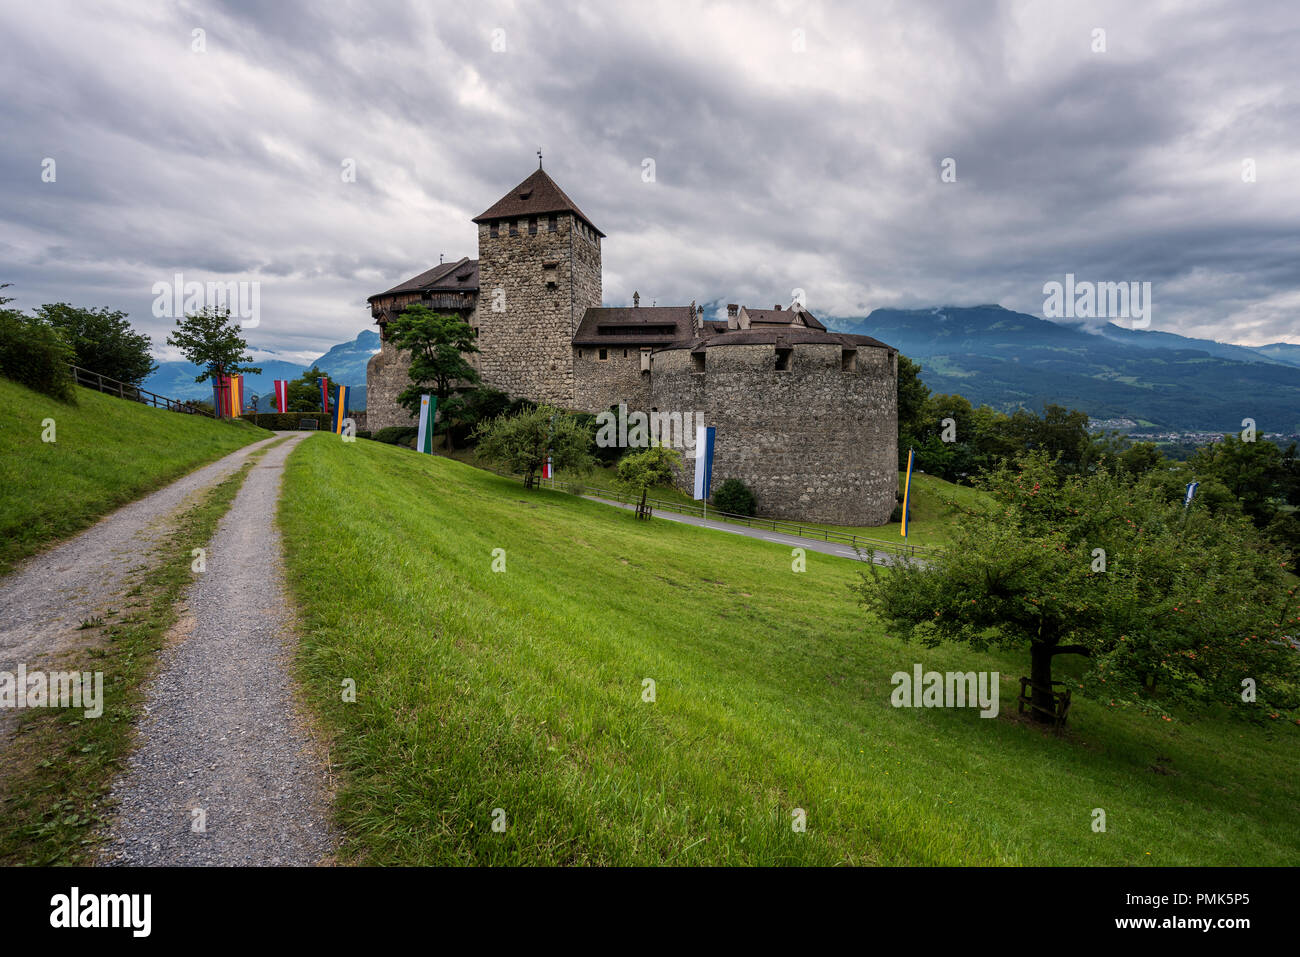 Storm clouds over Liechtenstein, Vaduz Castle. - Stock Image